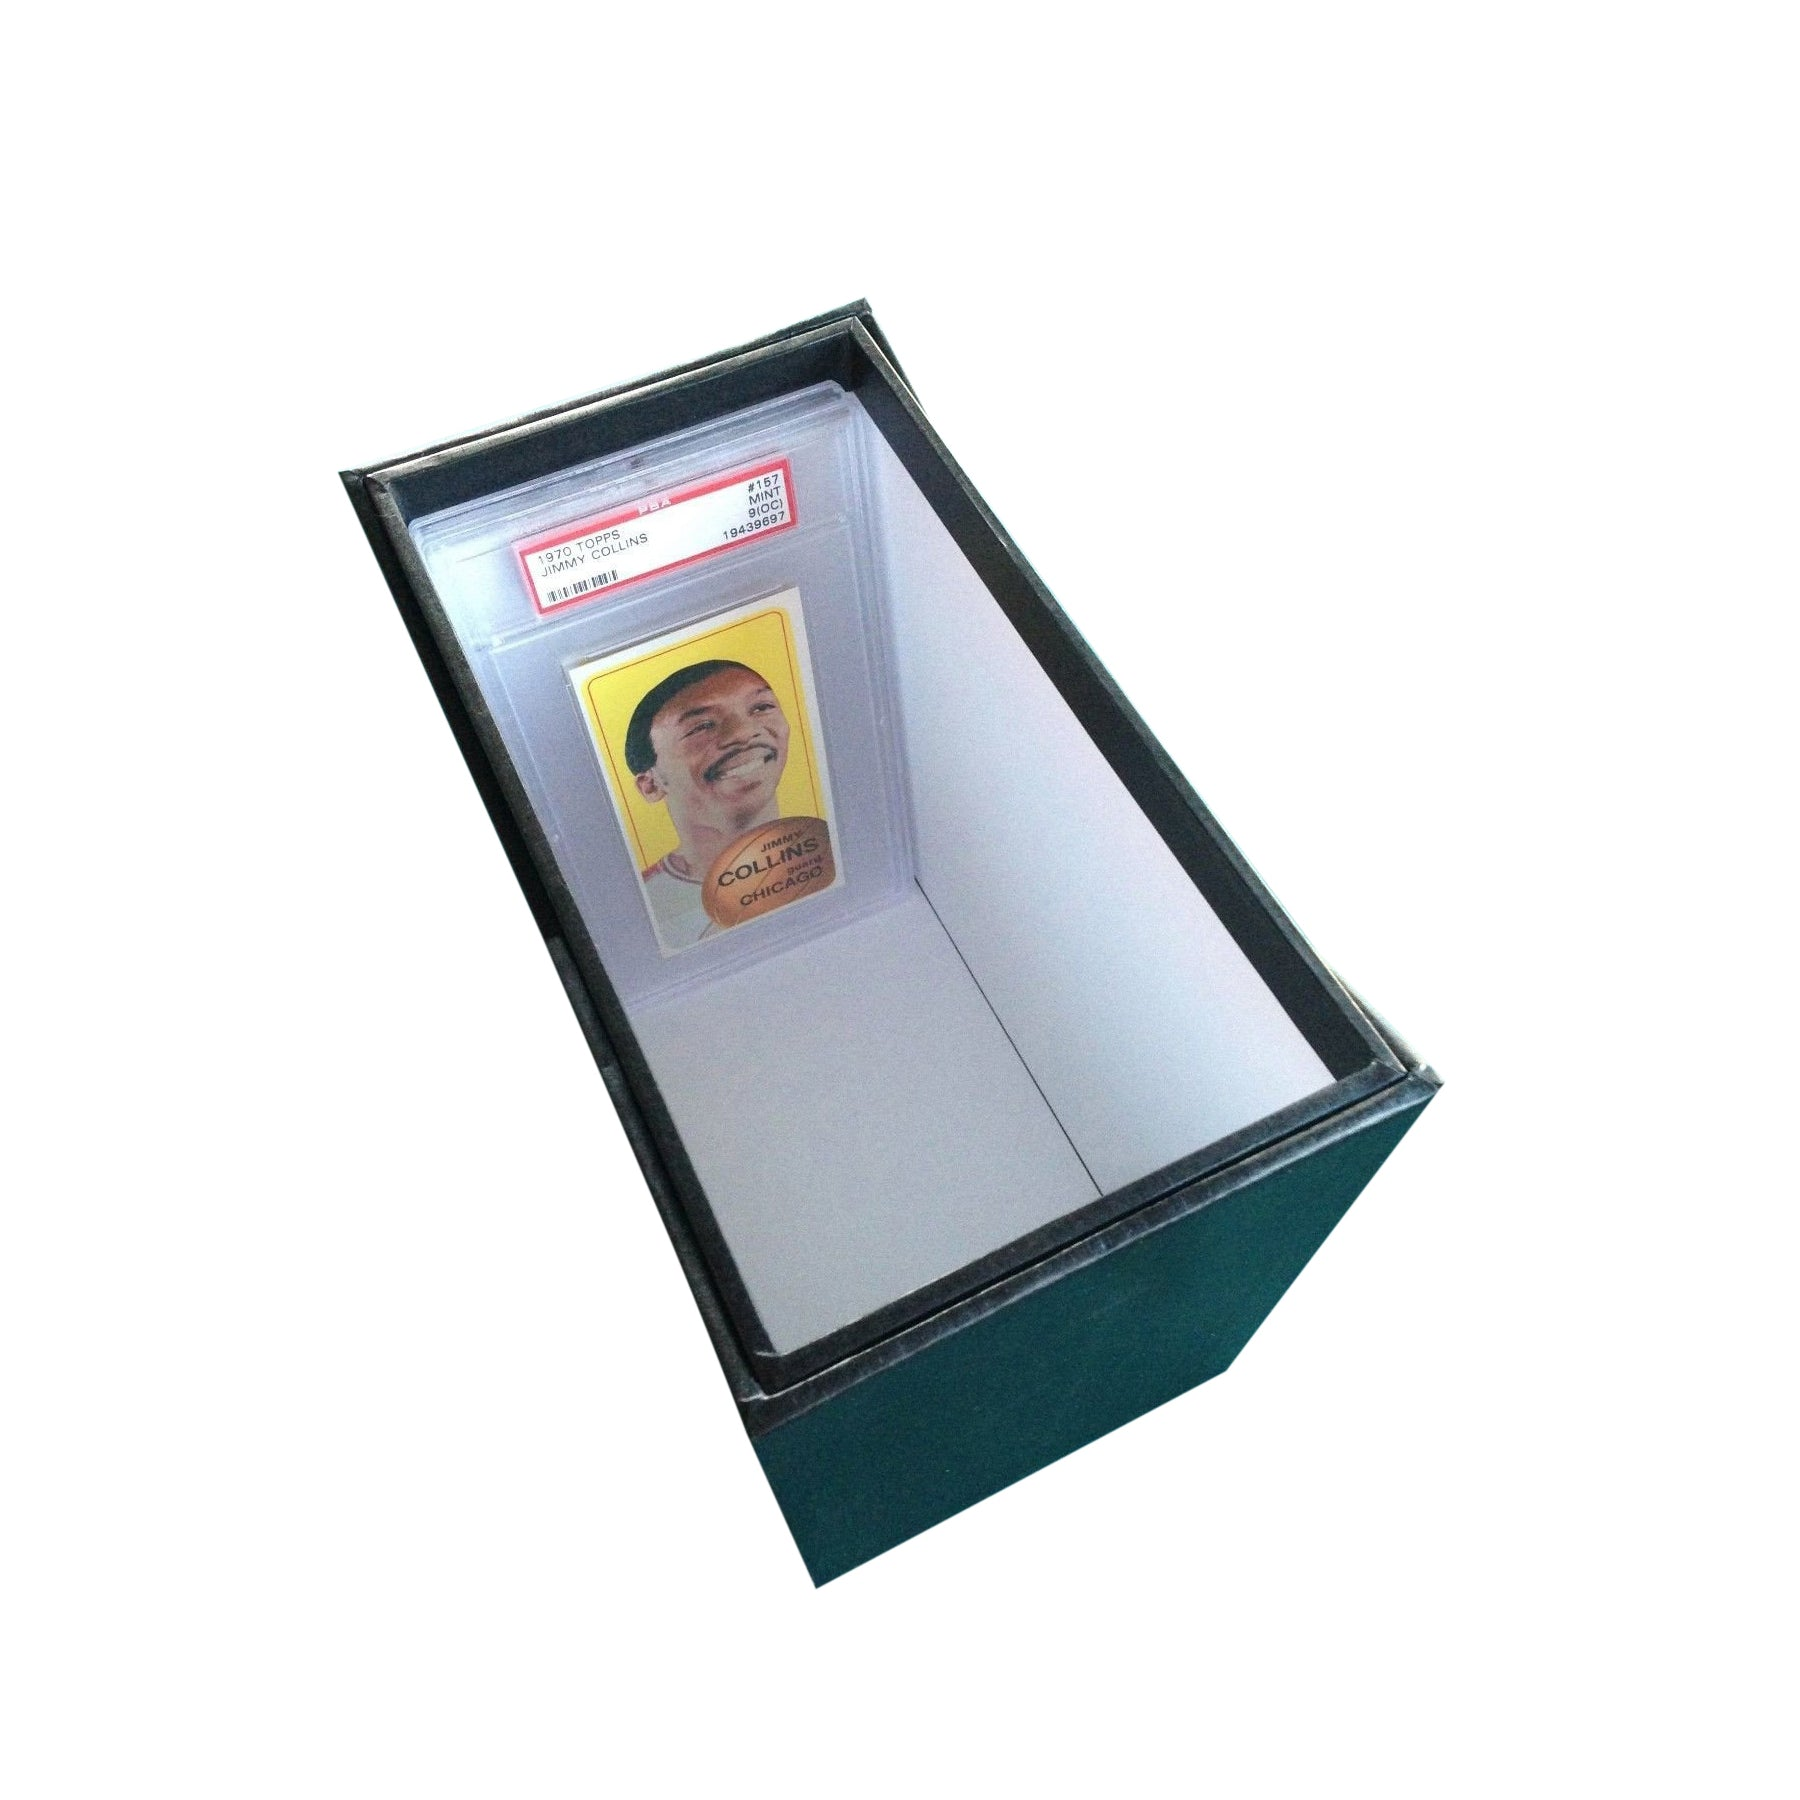 LARGE Graded Card Storage Box open, for PSA and BGS